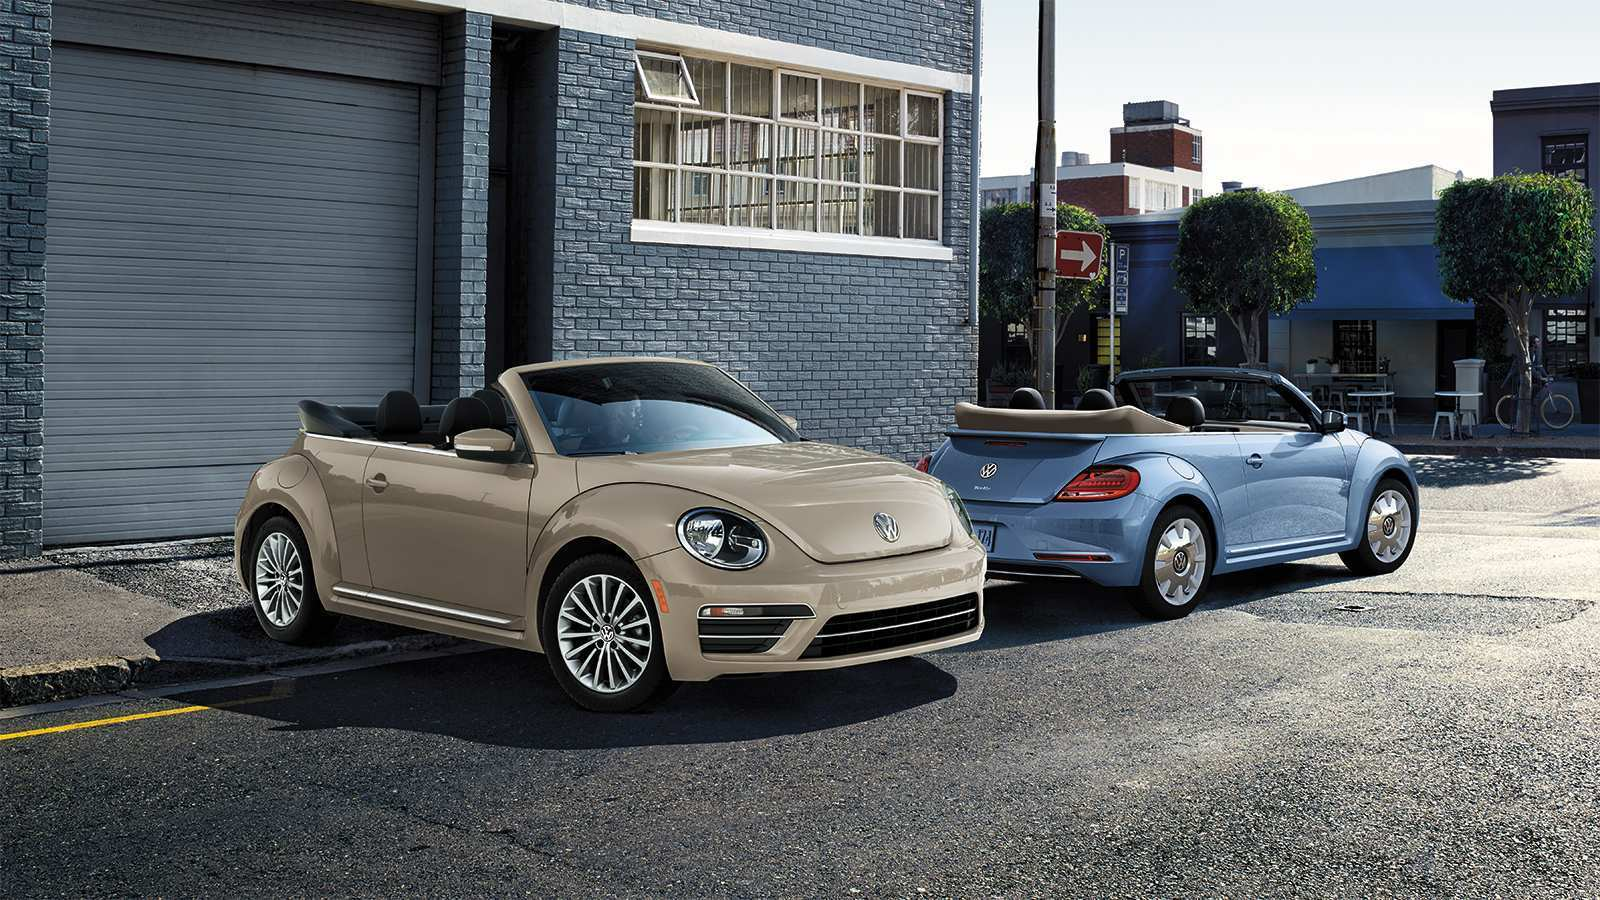 56 All New Volkswagen Maggiolino 2019 Review And Release Date